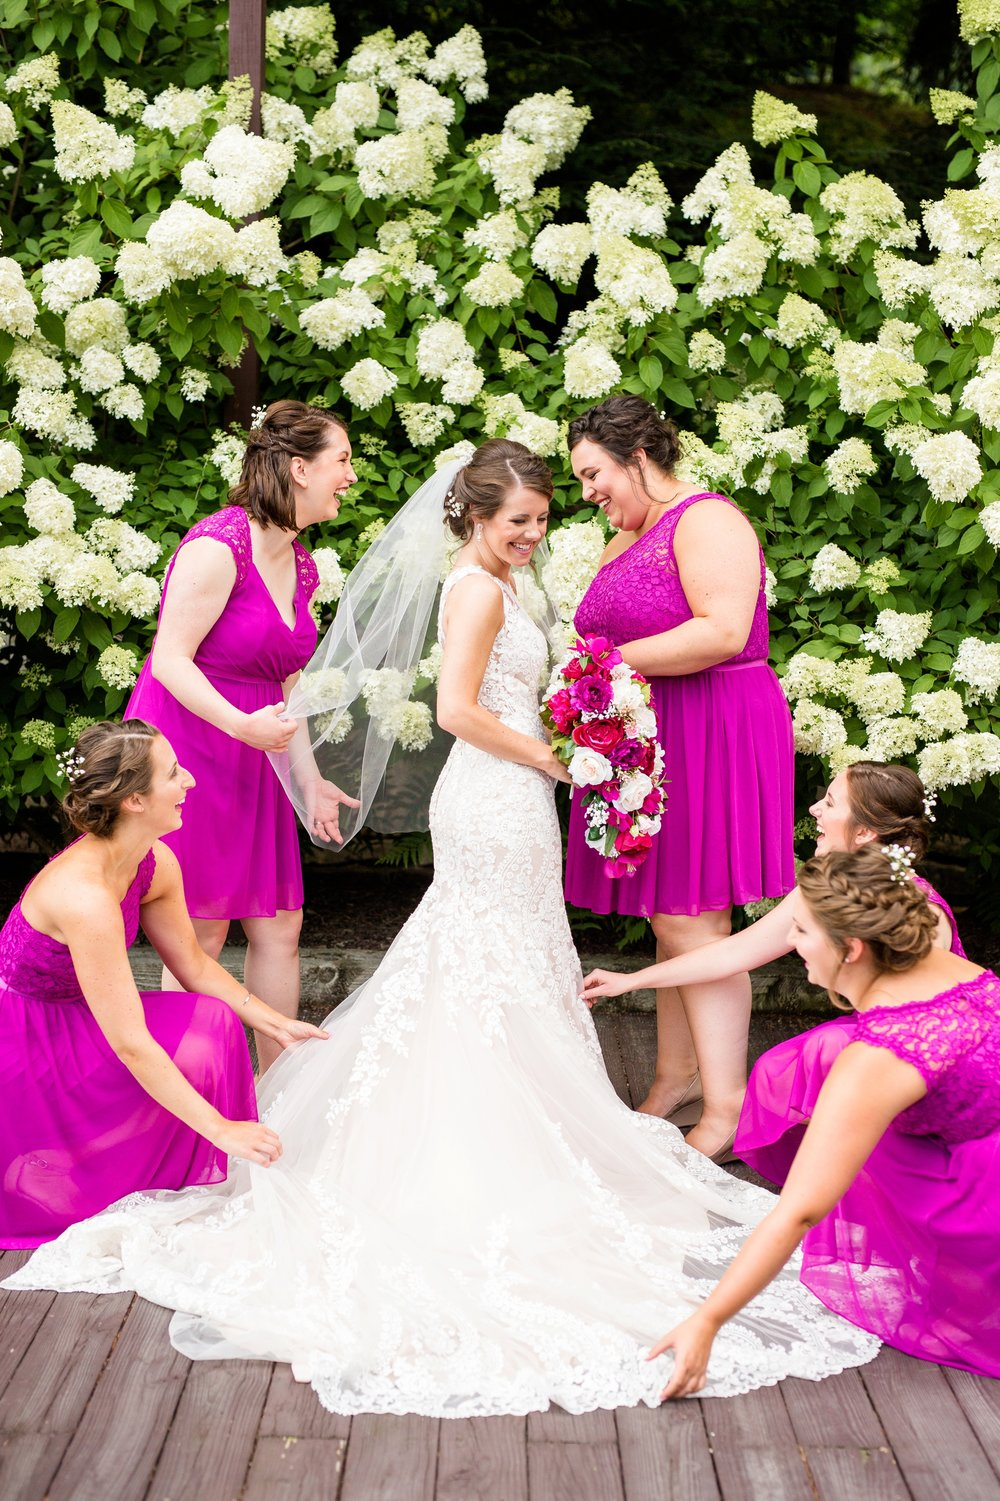 pittsburgh wedding photographer, the best pittsburgh wedding photographers, pittsburgh wedding venues, hidden valley resort wedding photos